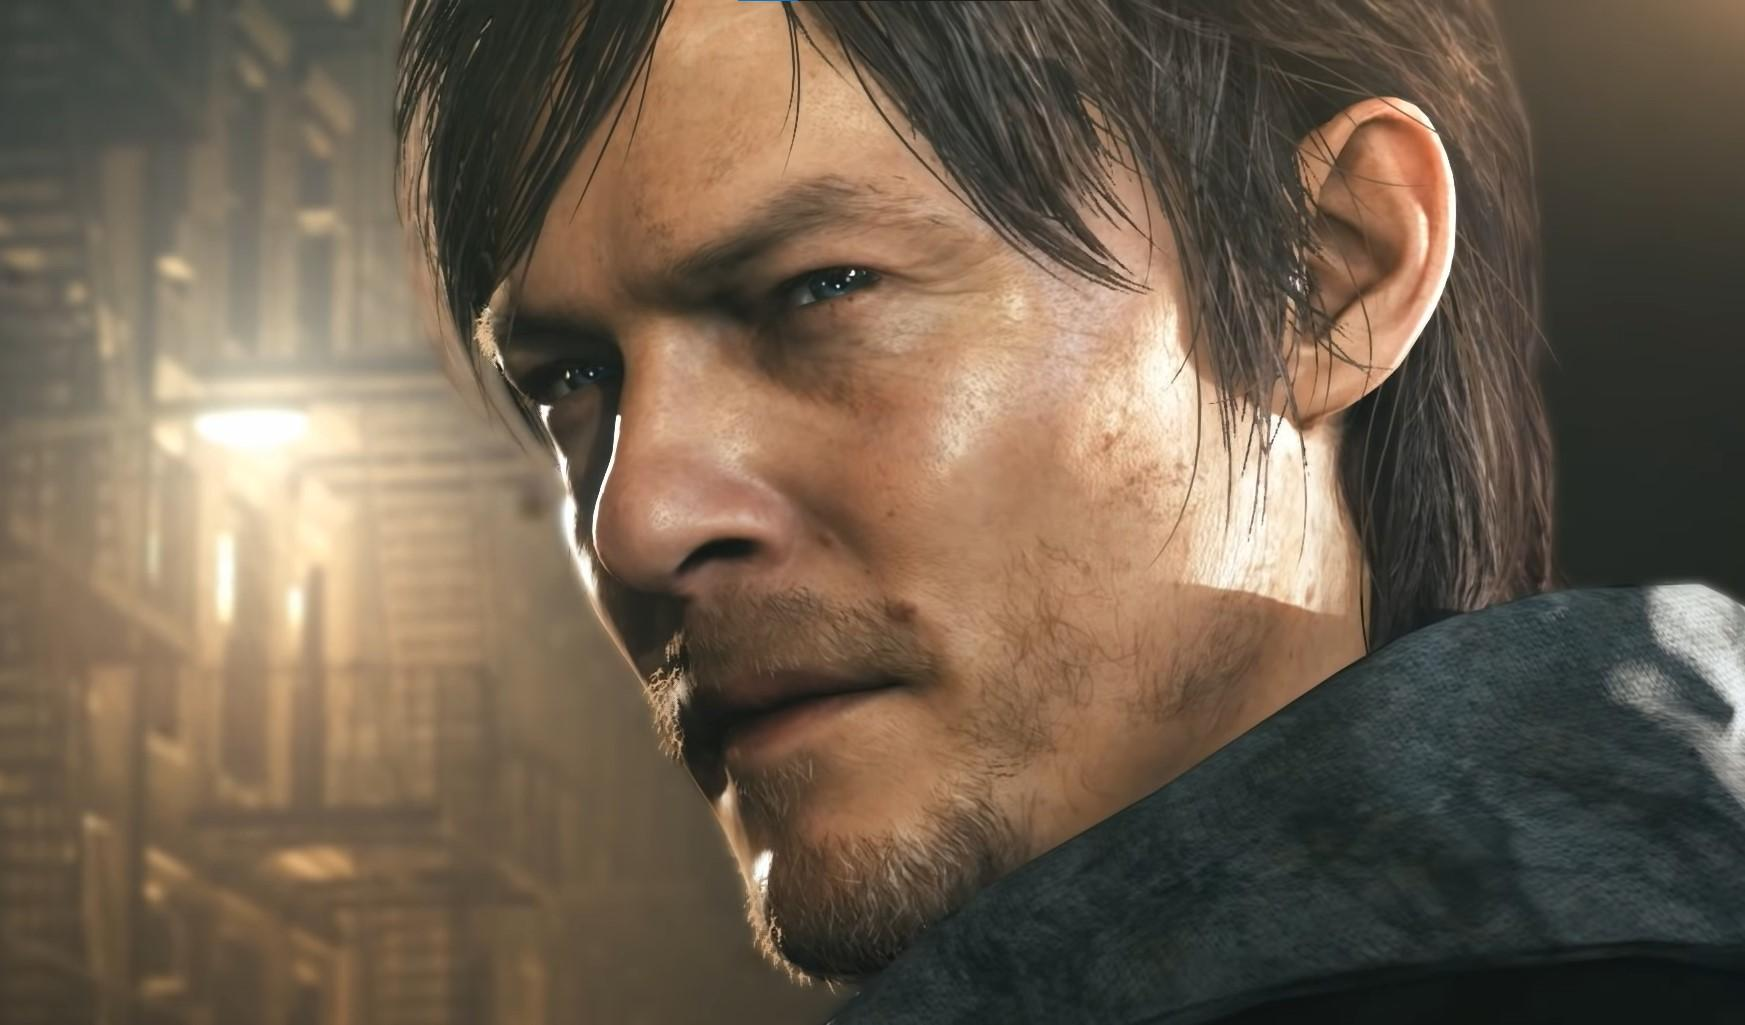 Norman Reedus in the now-cancelled Silent Hills game